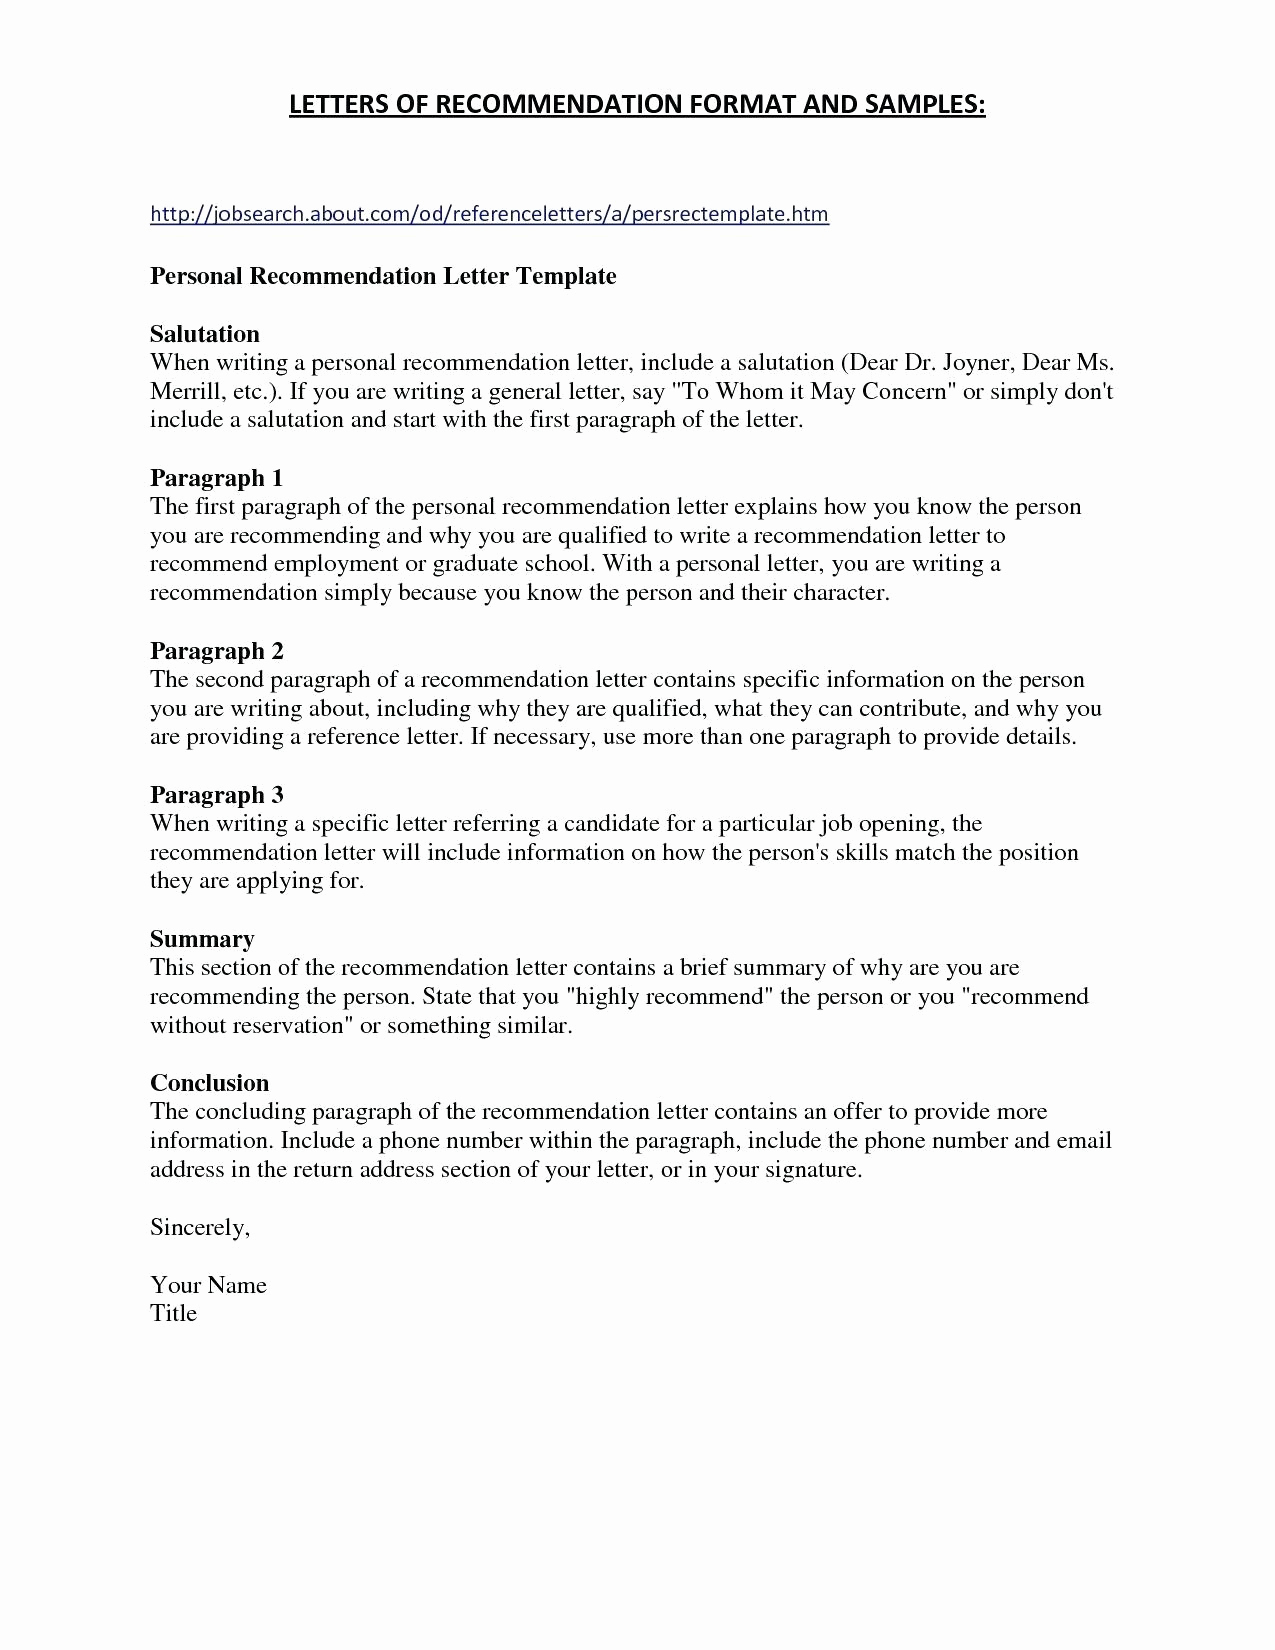 Housing Reference Letter Template - Sample Personalcharacter Reference Letter Created Using Ms Word